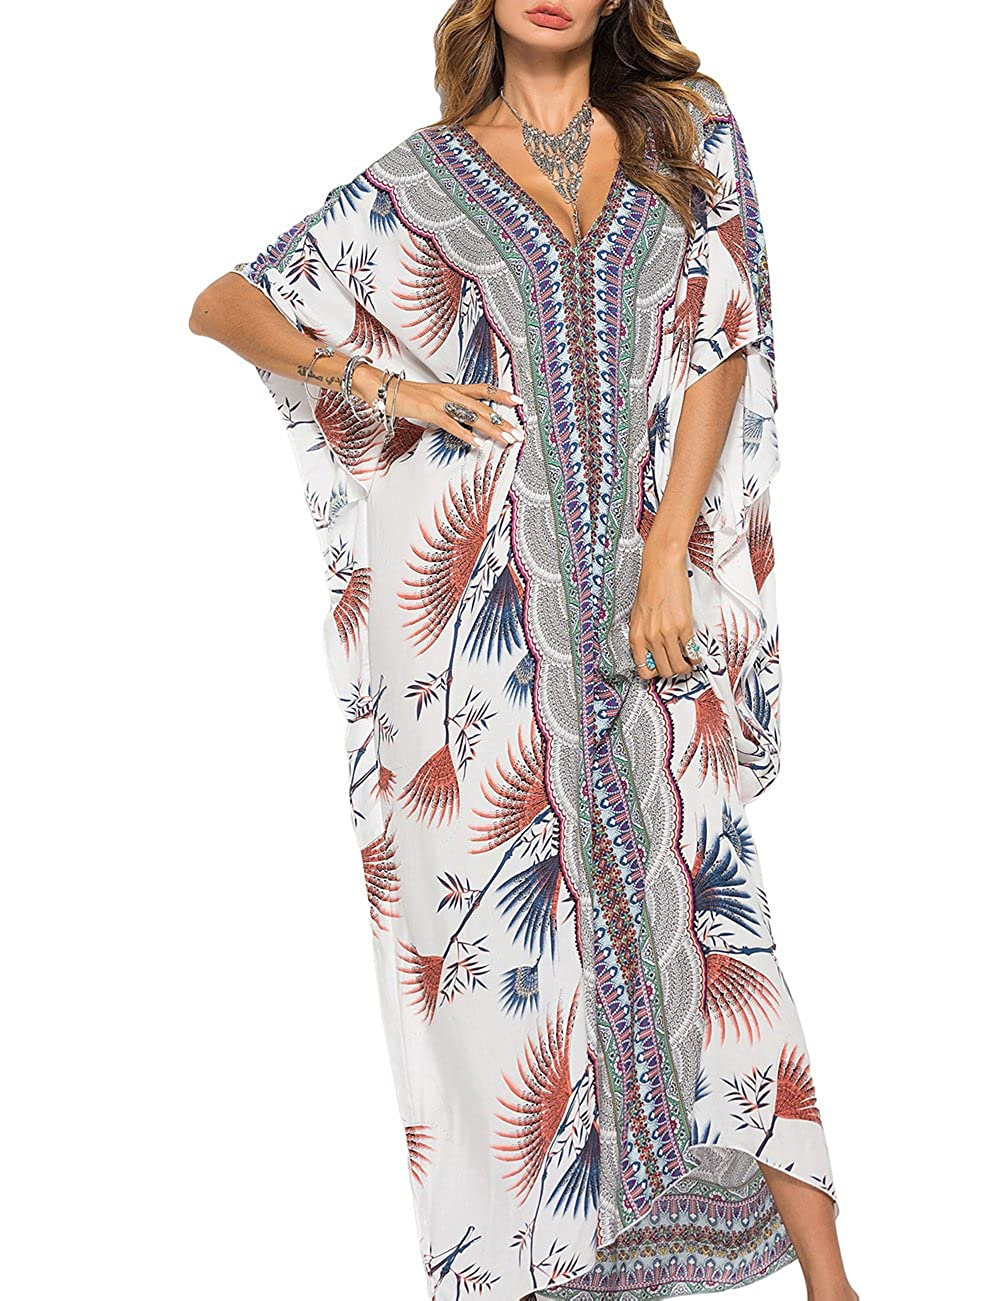 67f3d1c807 Flower Print Kaftan Maxi Dress Long Cover Up Oversize design and open sides  for easy fit. Loose fit, Bohemian printed style suitable to wear to beach